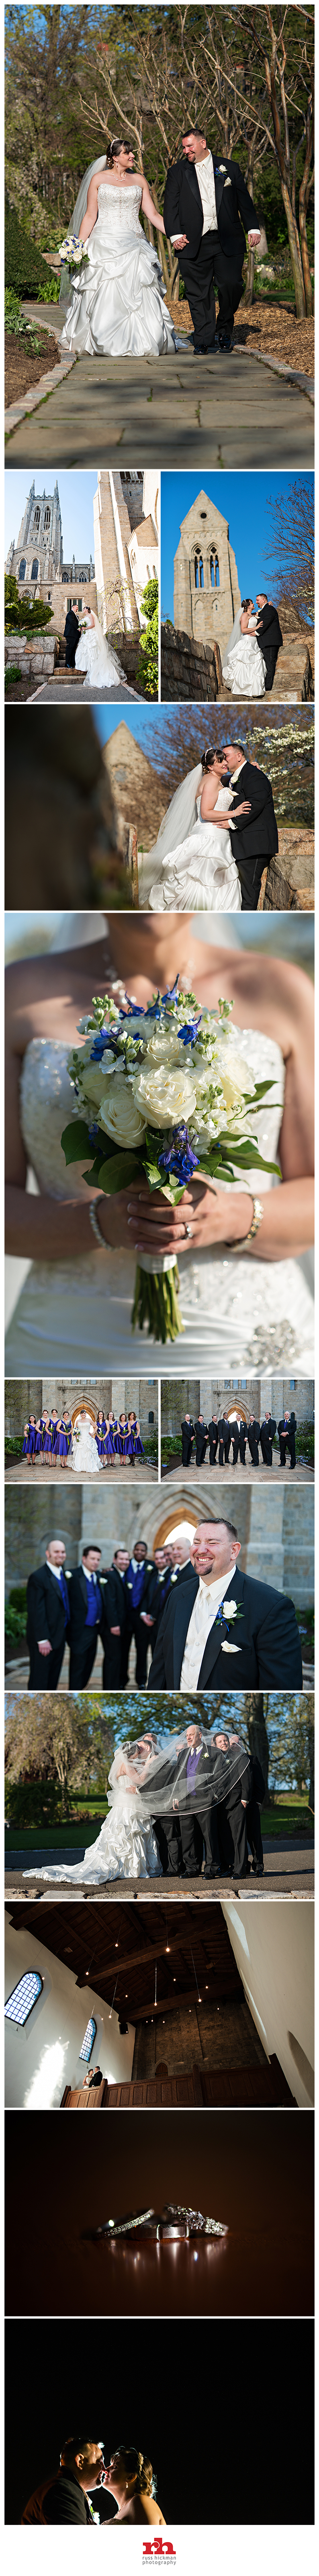 Philadelphia Wedding Photographer RTWB0005